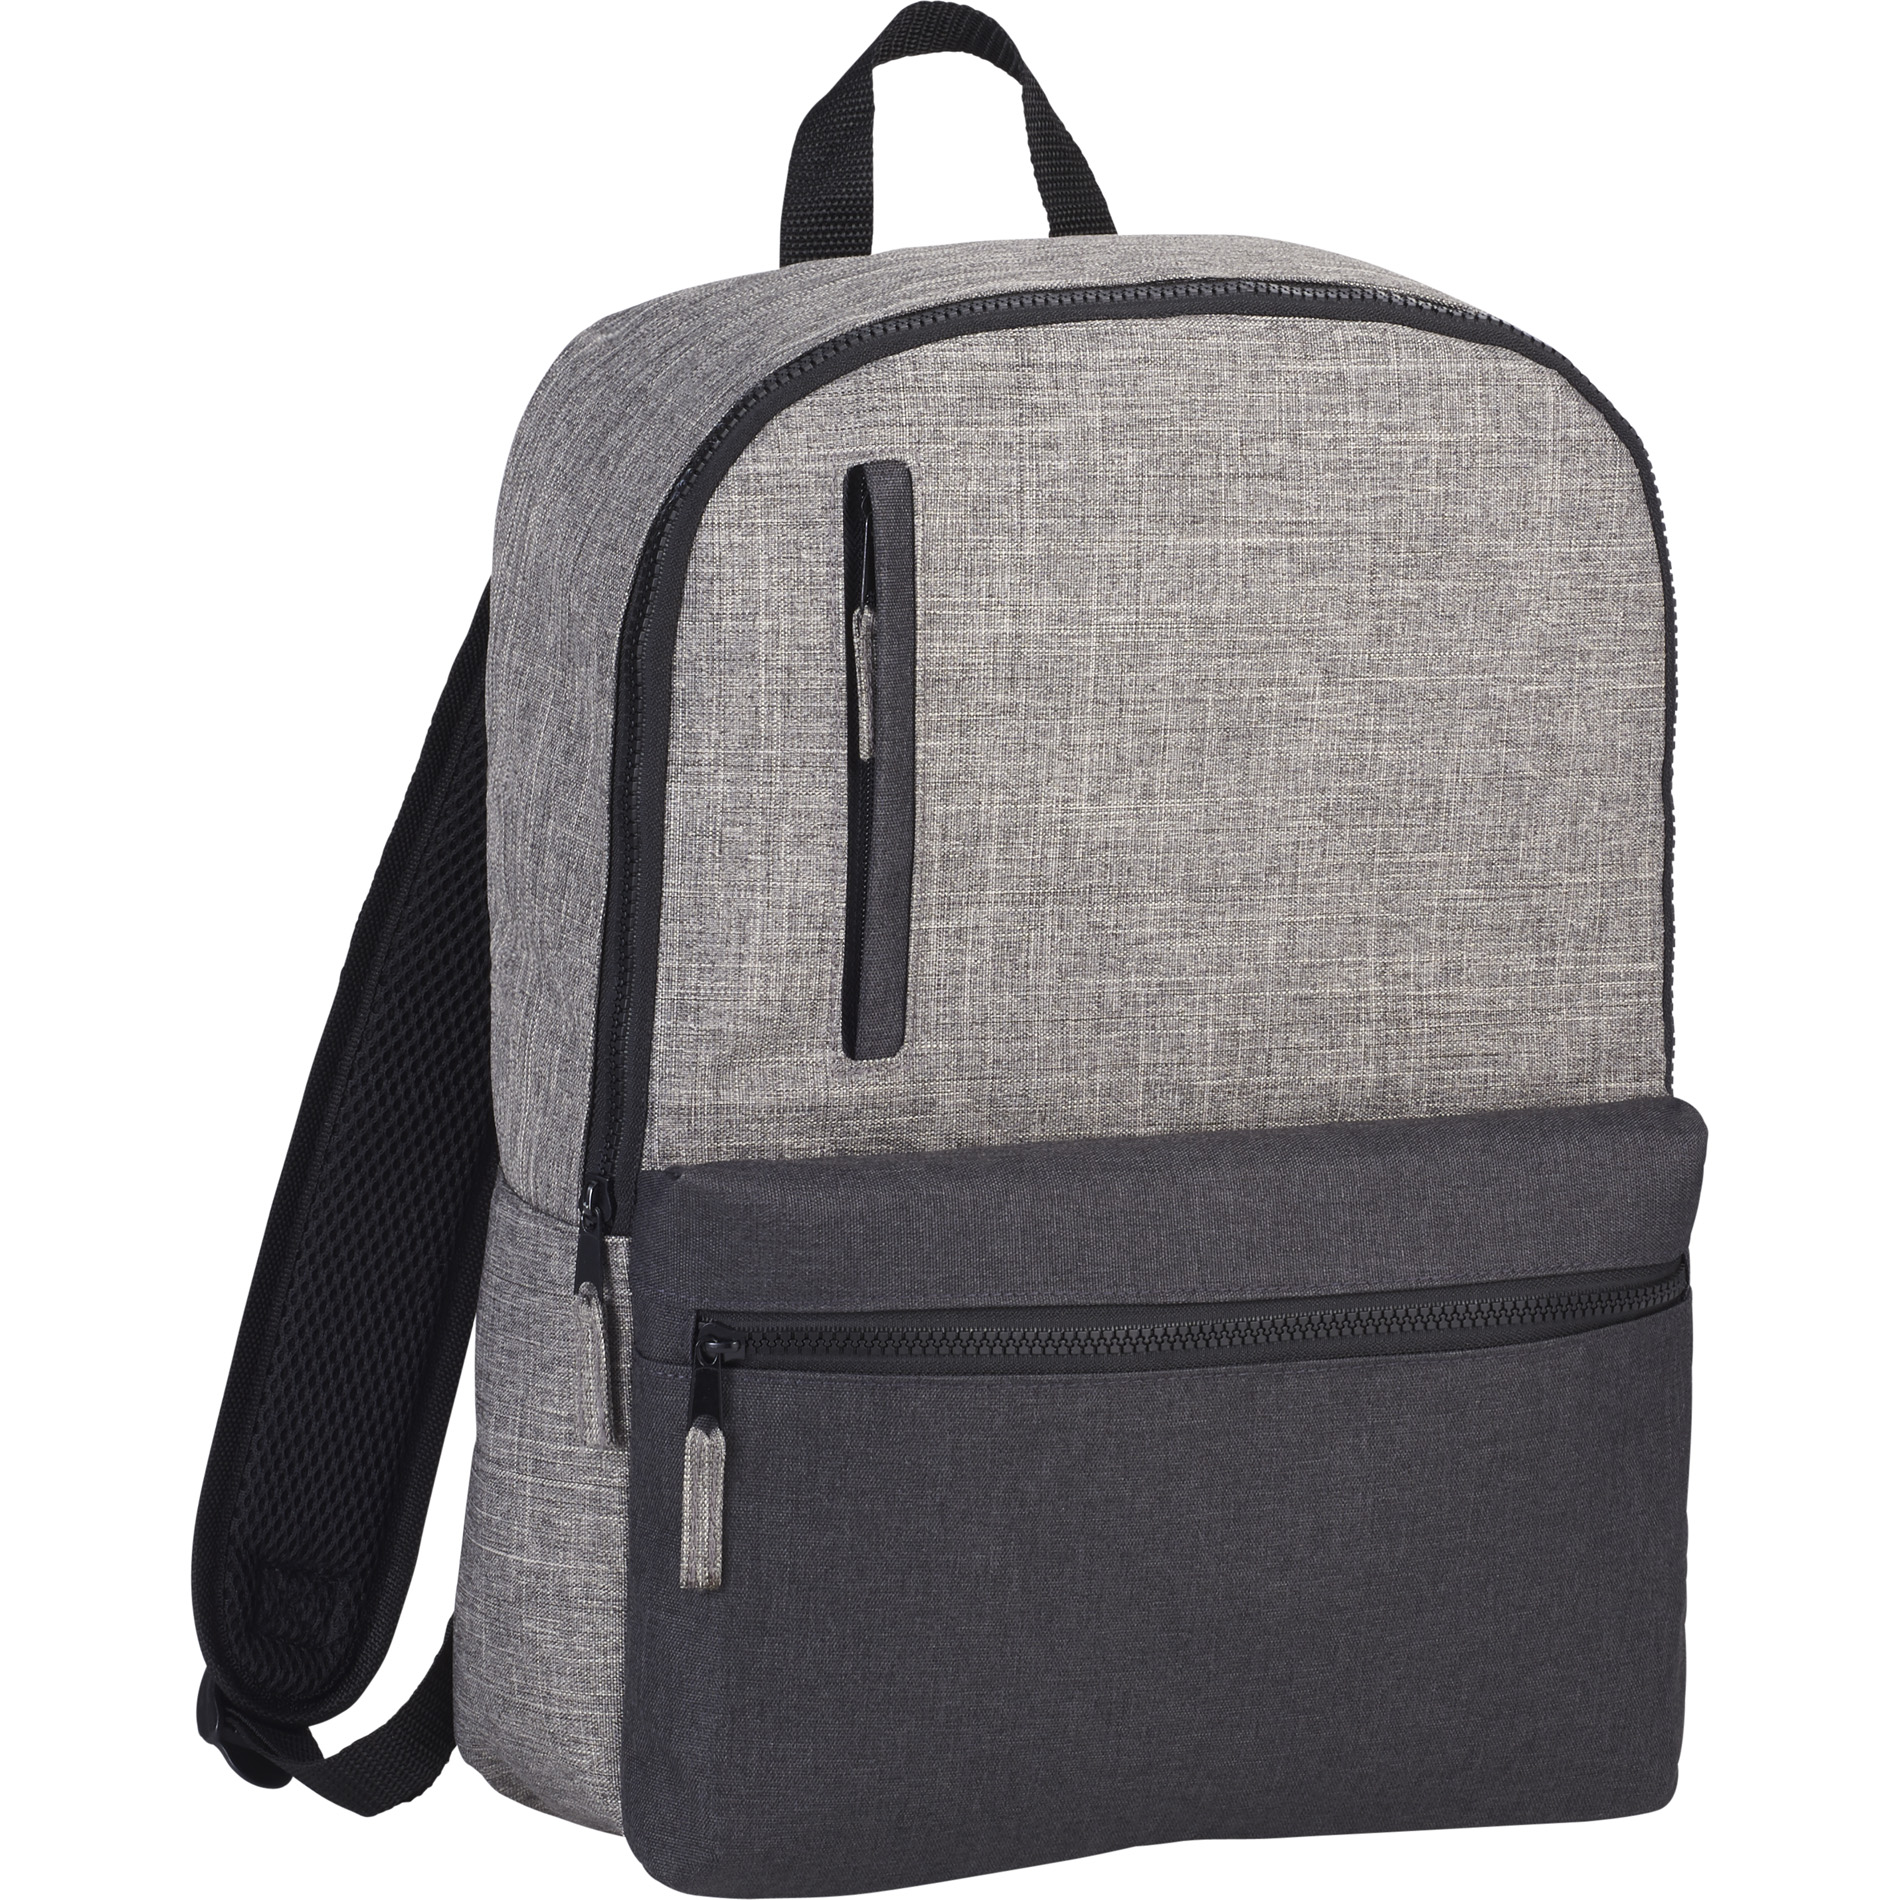 "LEEDS 3001-70 - Reclaim Recycled 15"" Computer Backpack"